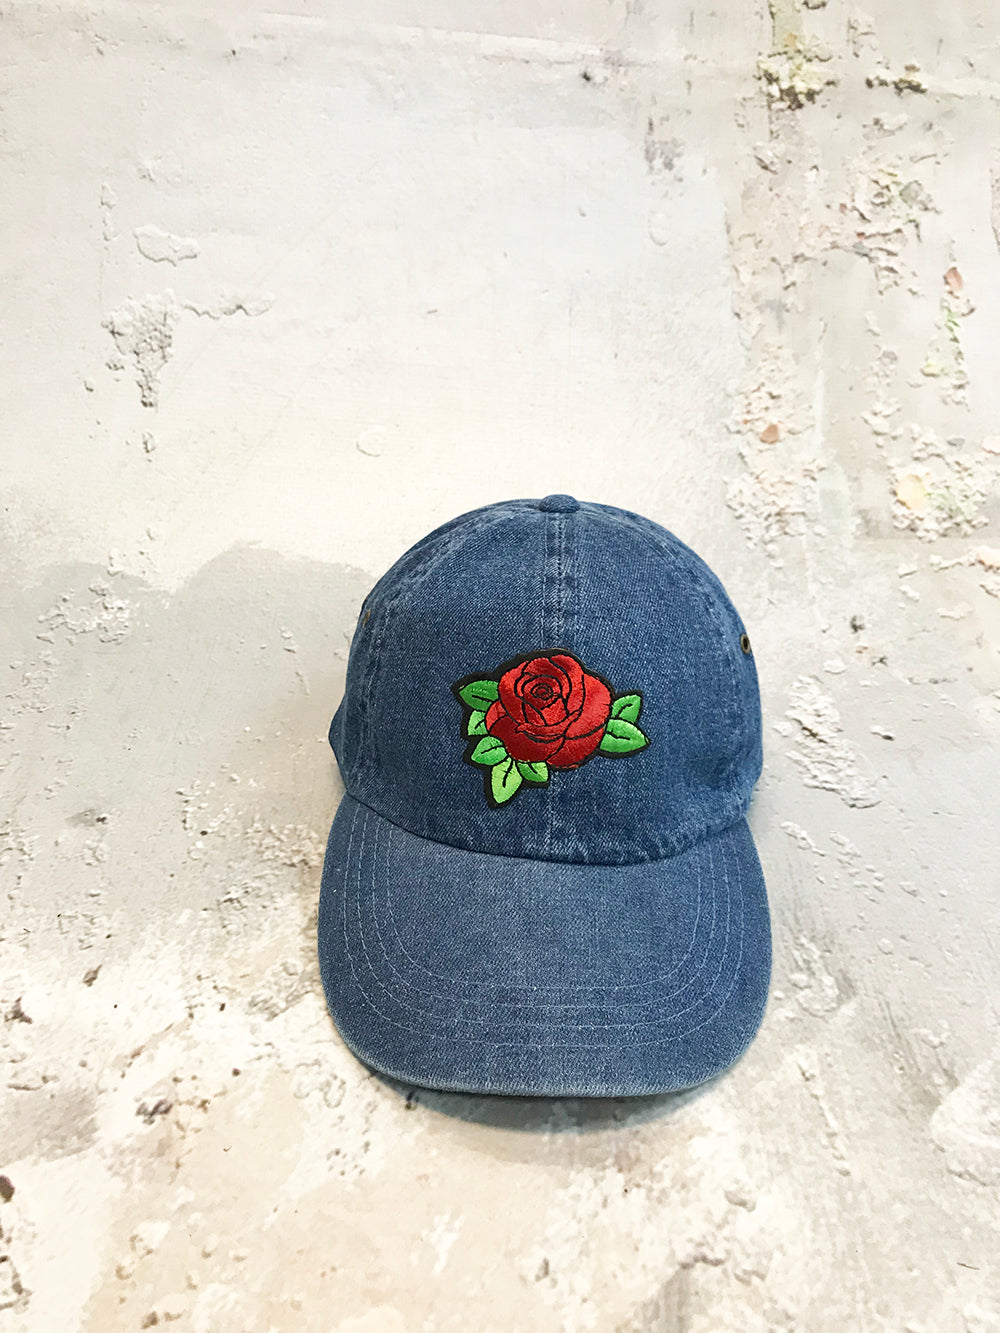 Rose Embroidered Denim Strapback Cap